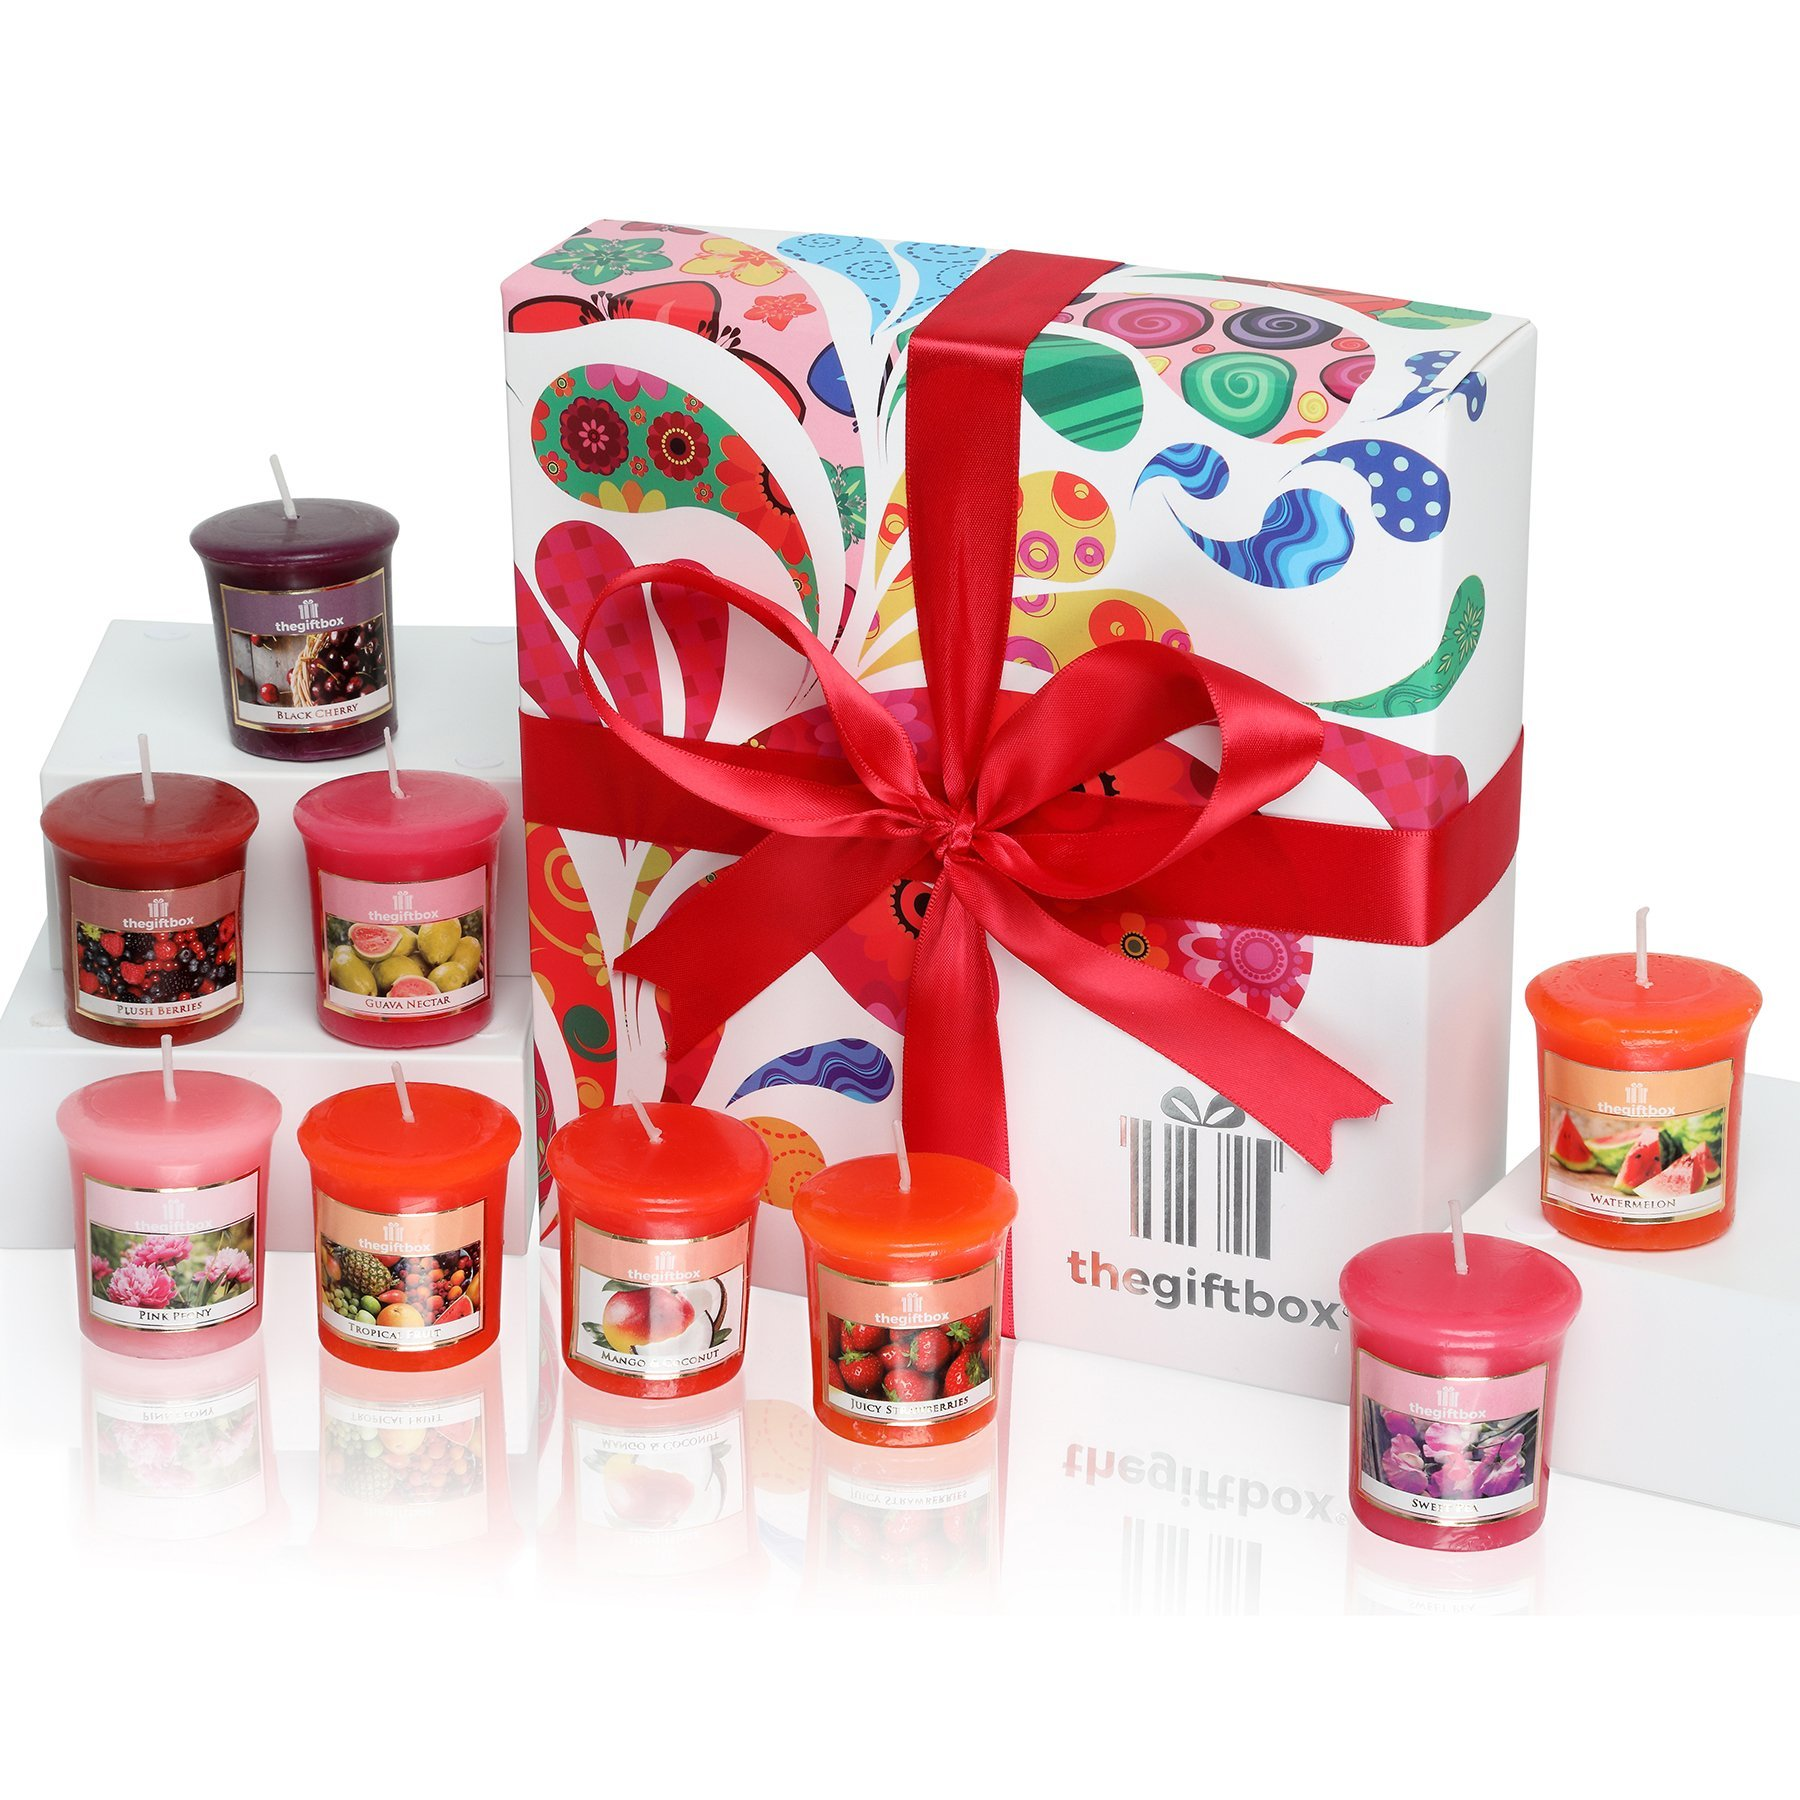 Scented Candles Gift Set 9 X Are Luxury Birthday Gifts For Women Anniversary Her Relax And